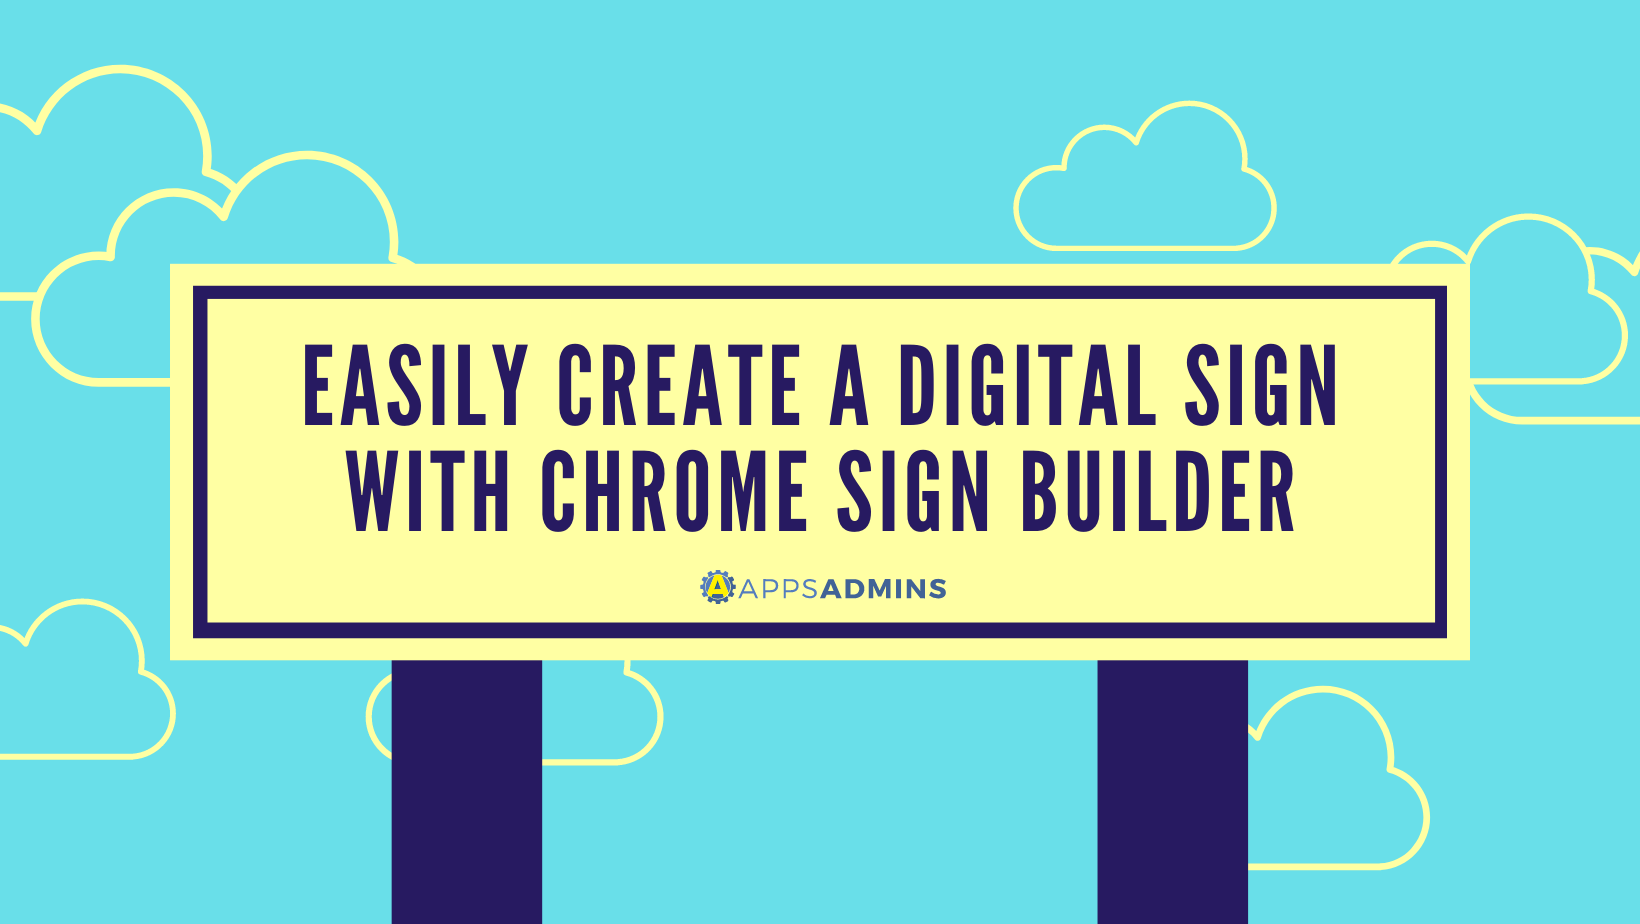 Easily Create a Digital Sign with Chrome Sign Builder